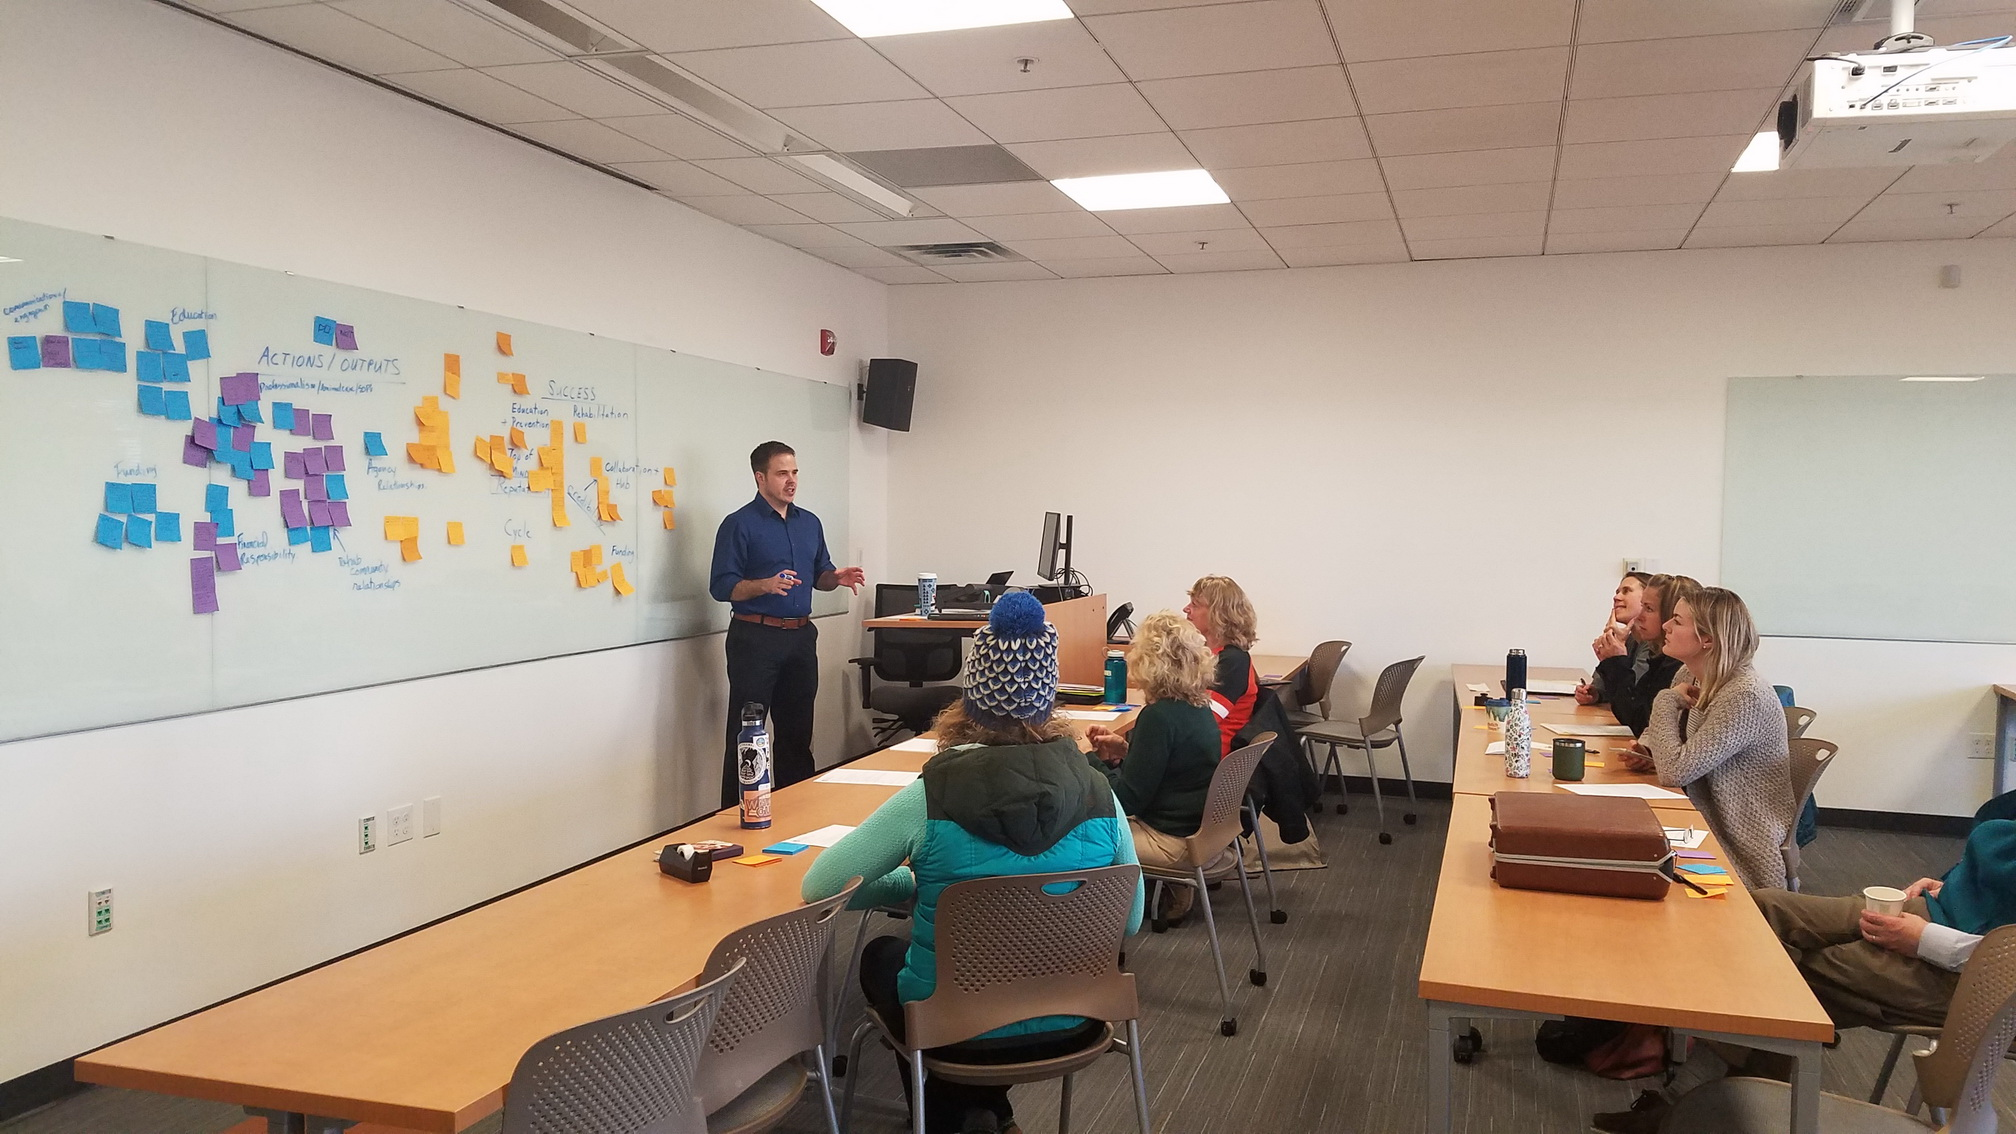 Adam Krynicki hosts a design sprint to help a new venture define its service offering